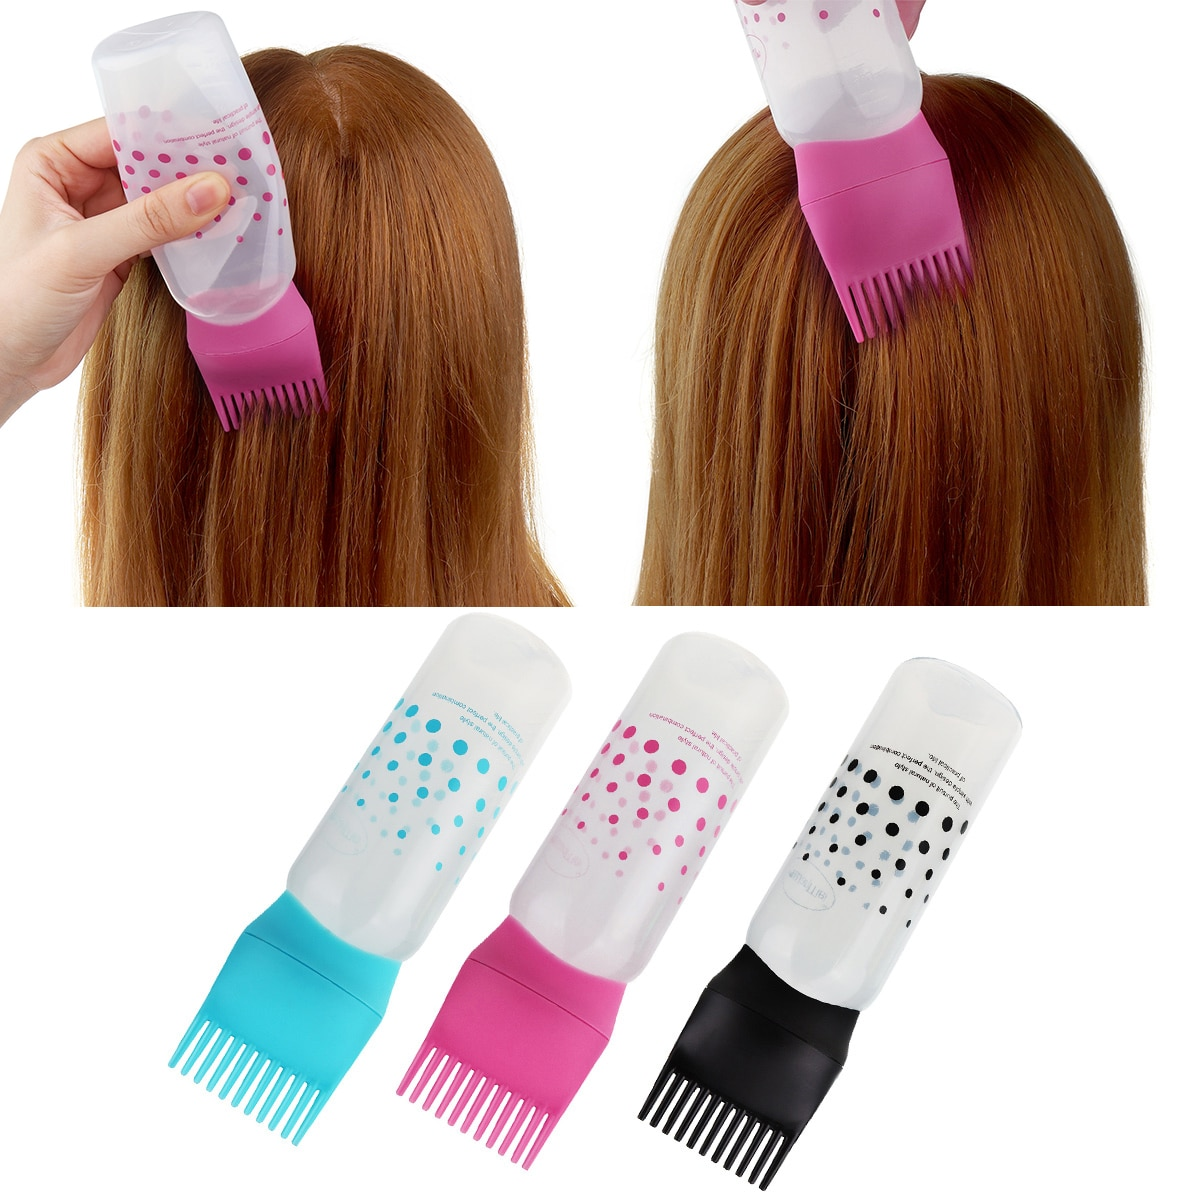 1pc Shampoo Bottle Plastic Oil Comb Applicator Bottles Big Capacity Dispensing Salon Hair Coloring S